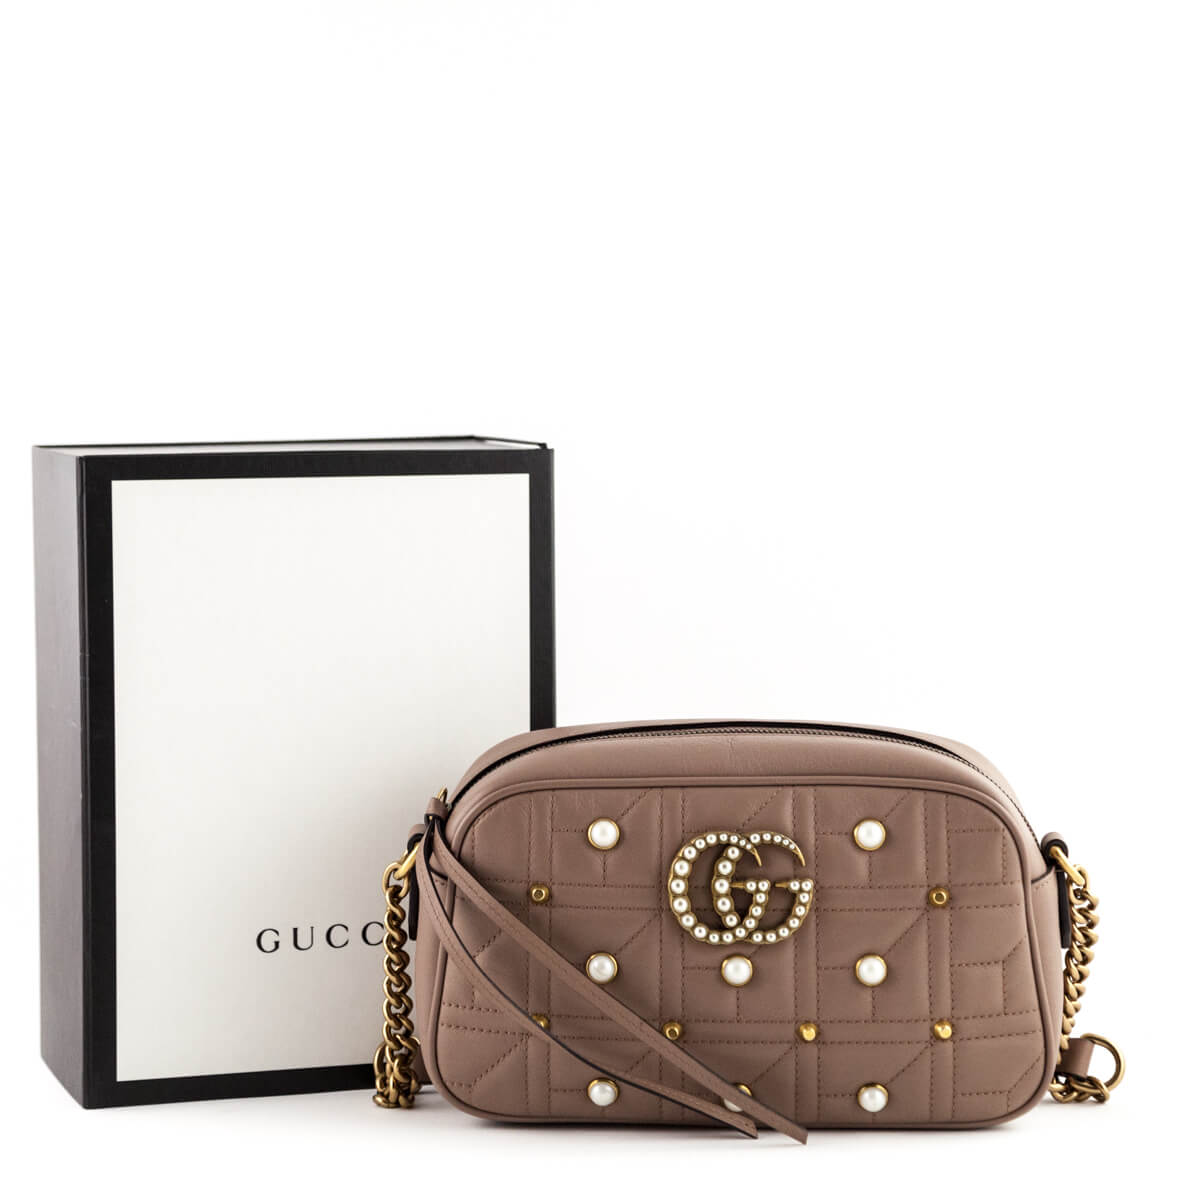 7173870e915 ... Gucci Nude Calfskin Matelasse Small Pearl Studded GG Marmont - LOVE  that BAG - Preowned Authentic ...